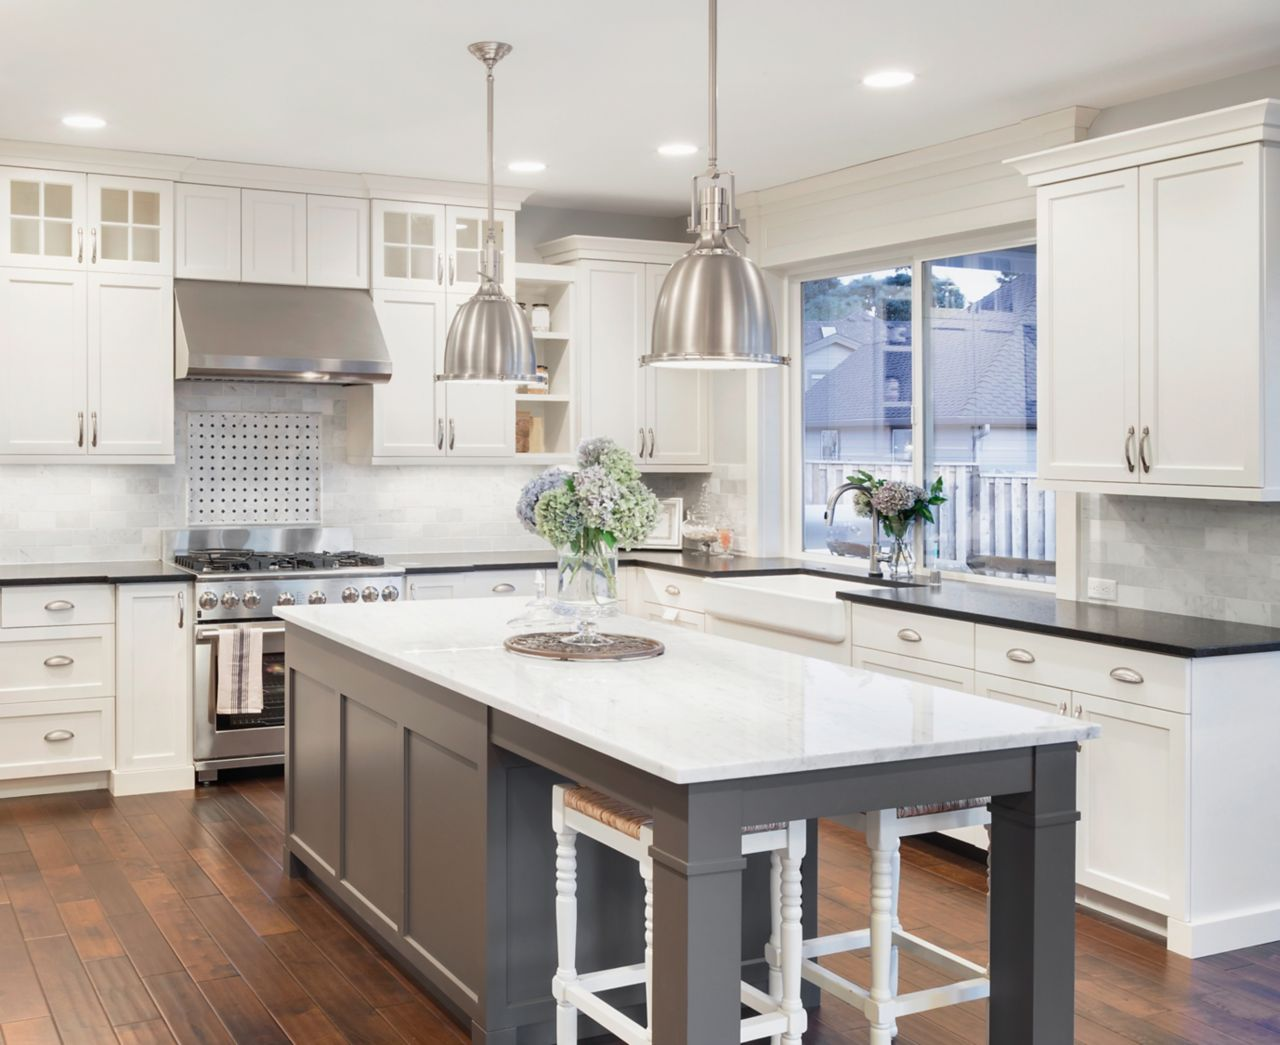 Solutions for your kitchen